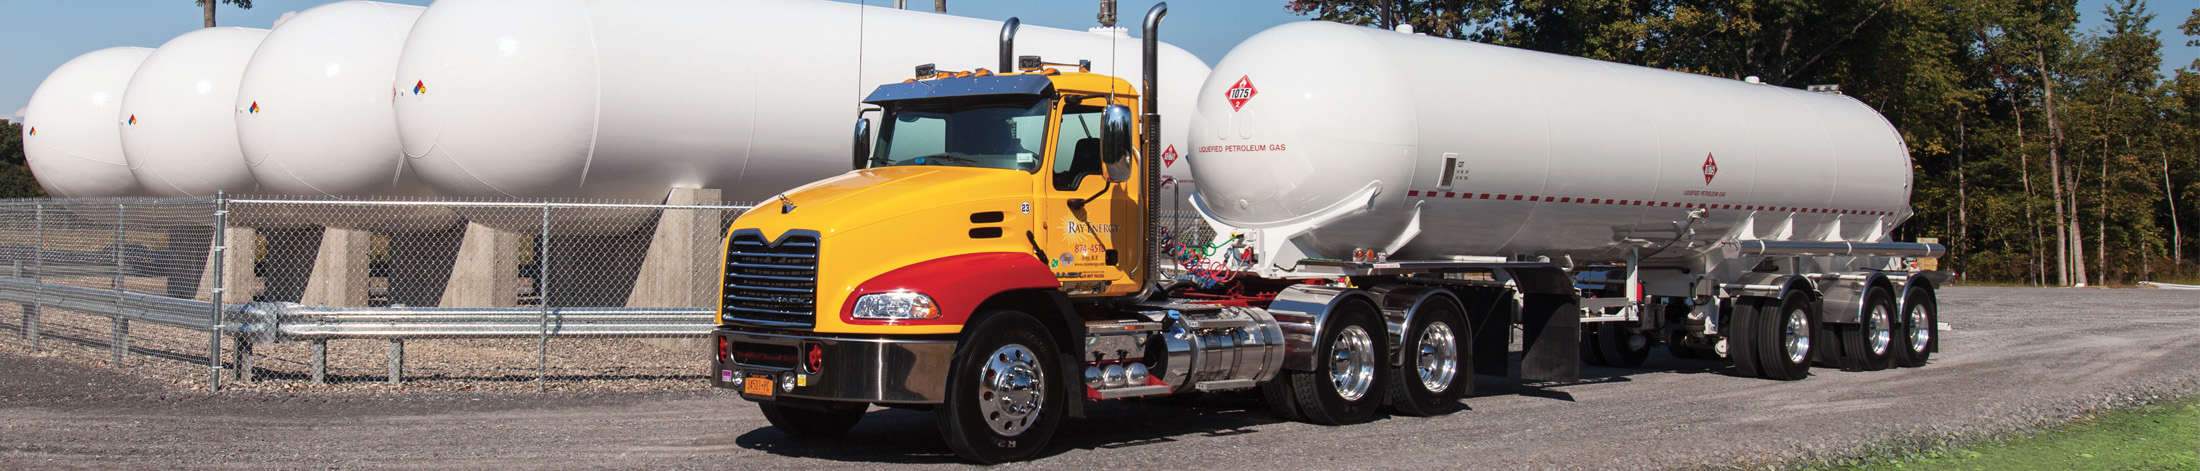 Uploaded Image: /uploads/slides/Ray-Energy-Propane-Transport-2200.jpg